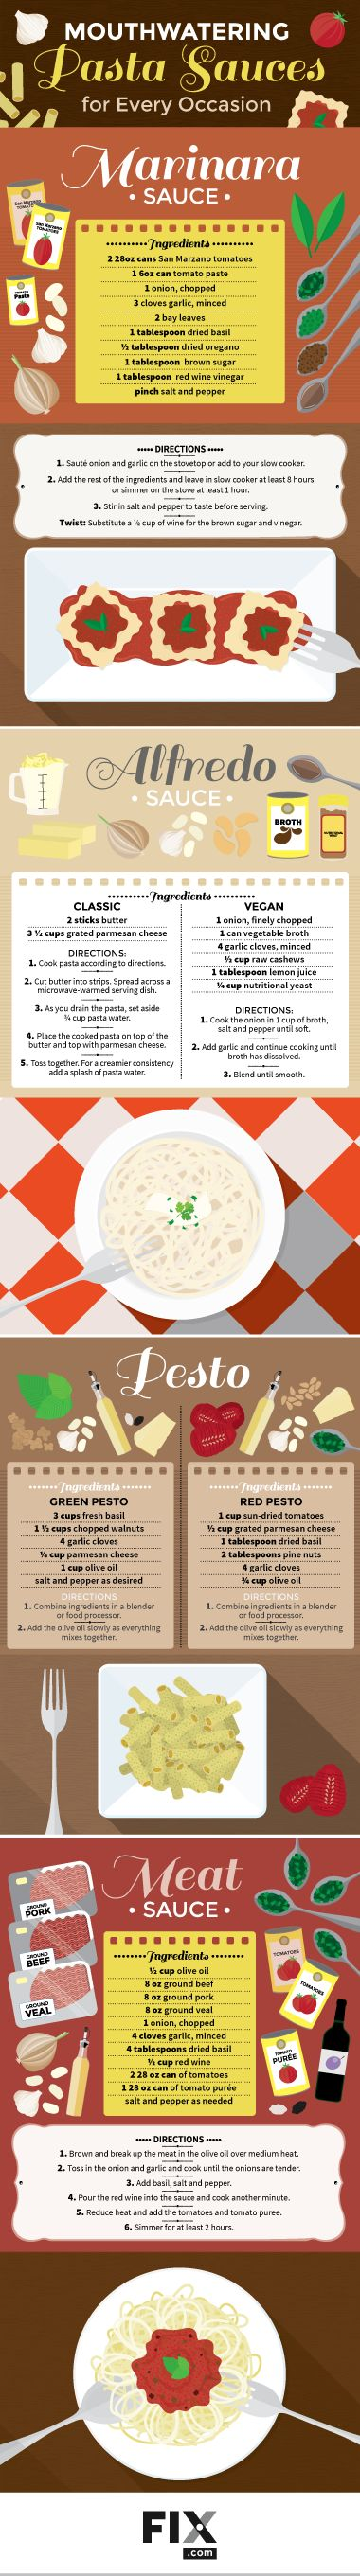 Do more than just open a jar on your next pasta night! Here are tips on making pesto, tomato, Alfredo, and meat sauces at home!